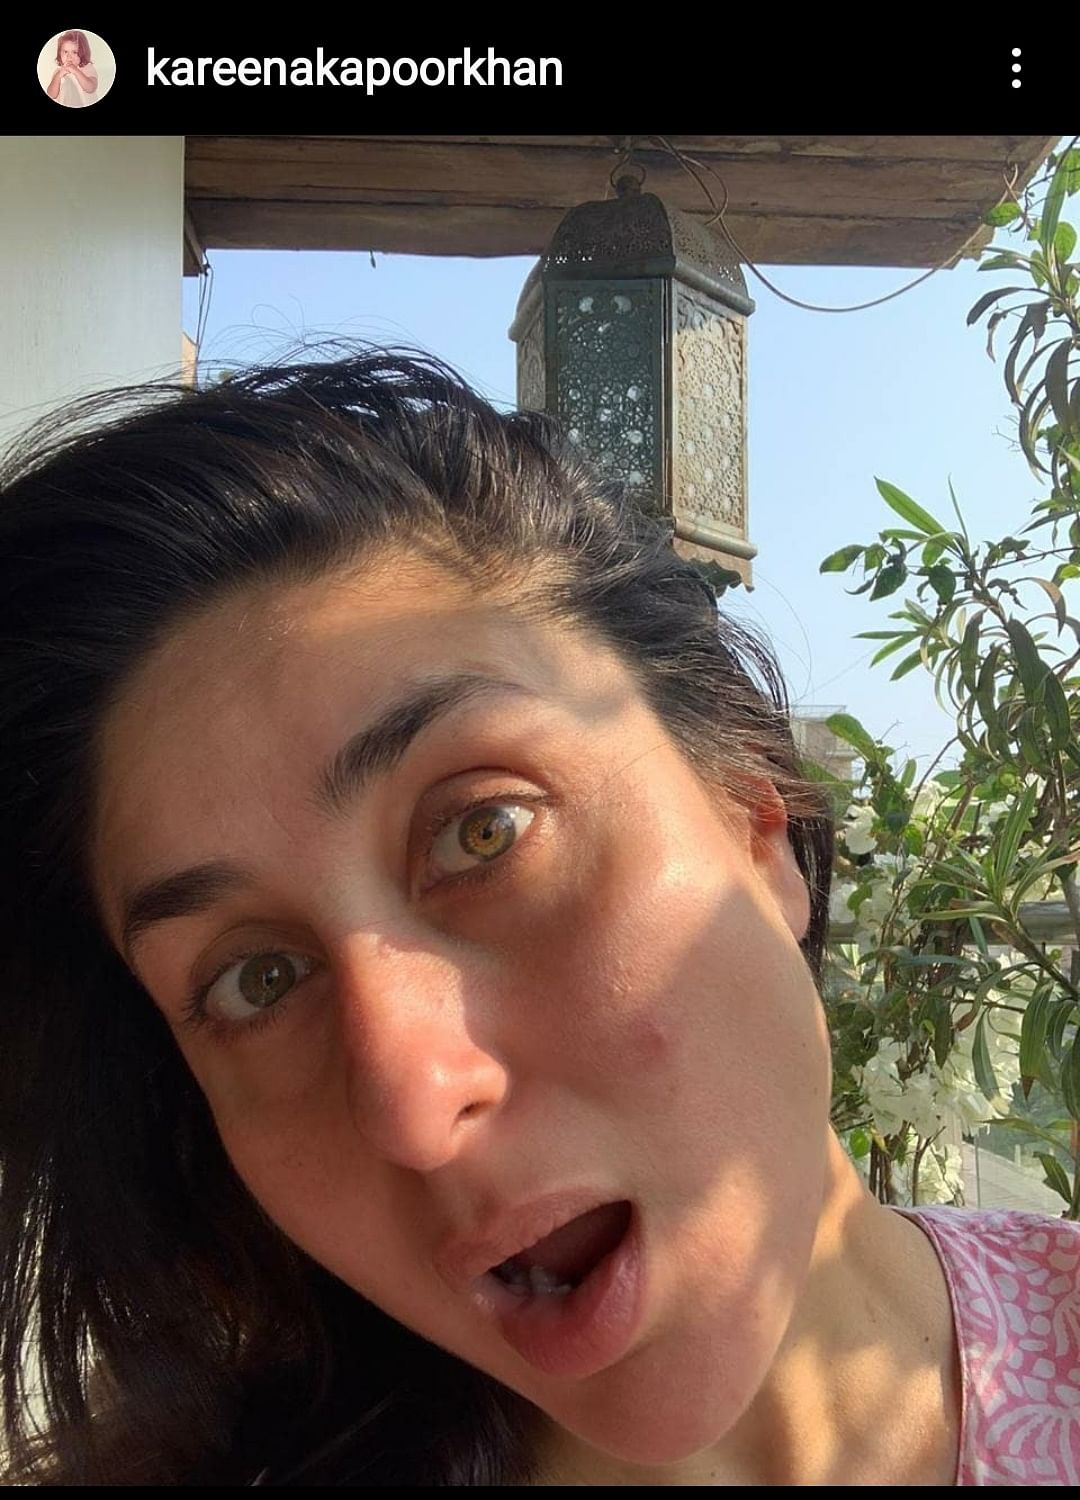 """""""Meanwhile... I just sat there staring in wonder of what was being created. PS: The zit on my face didn't get the memo of no personal visits and social distancing... 🤣 """" - Kareena Kapoor Khan"""